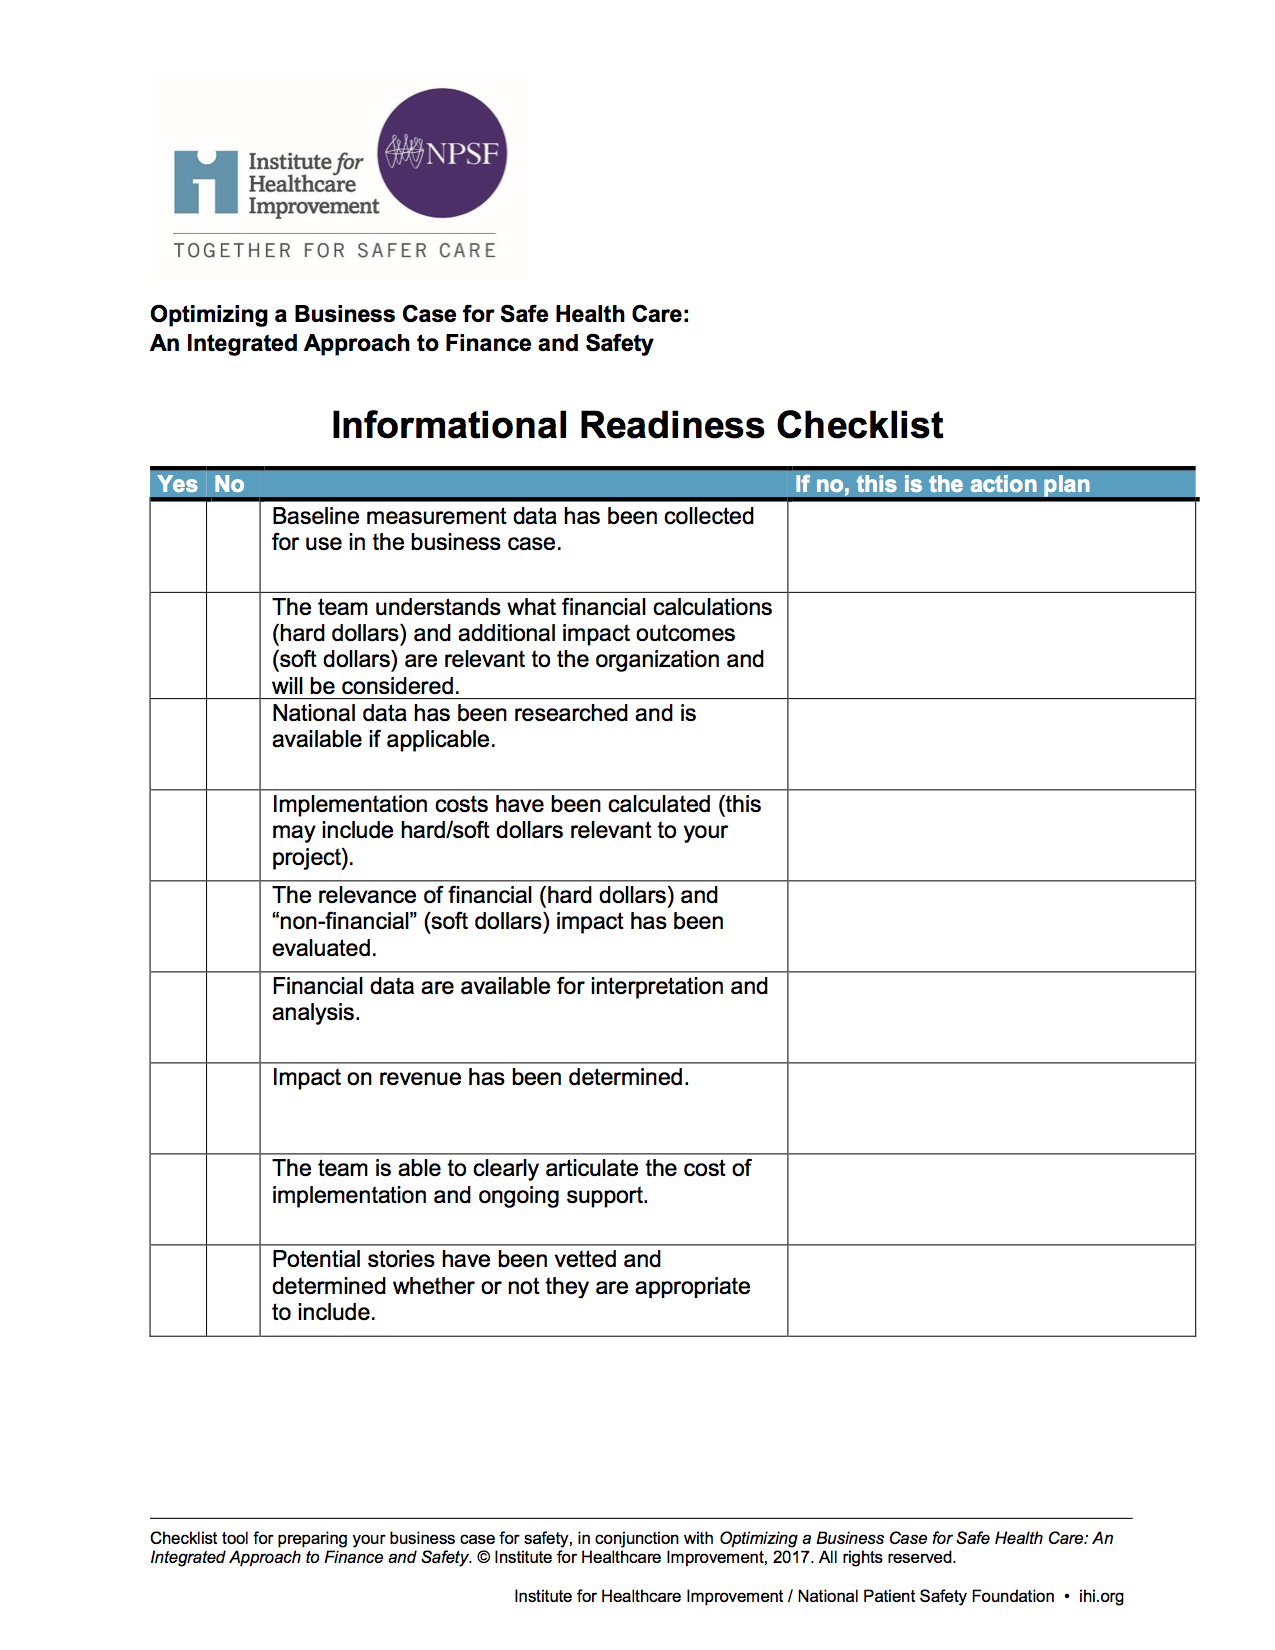 Psb Apr2018 Up Front Business Case Safe Health Care Informational Readiness Checklist